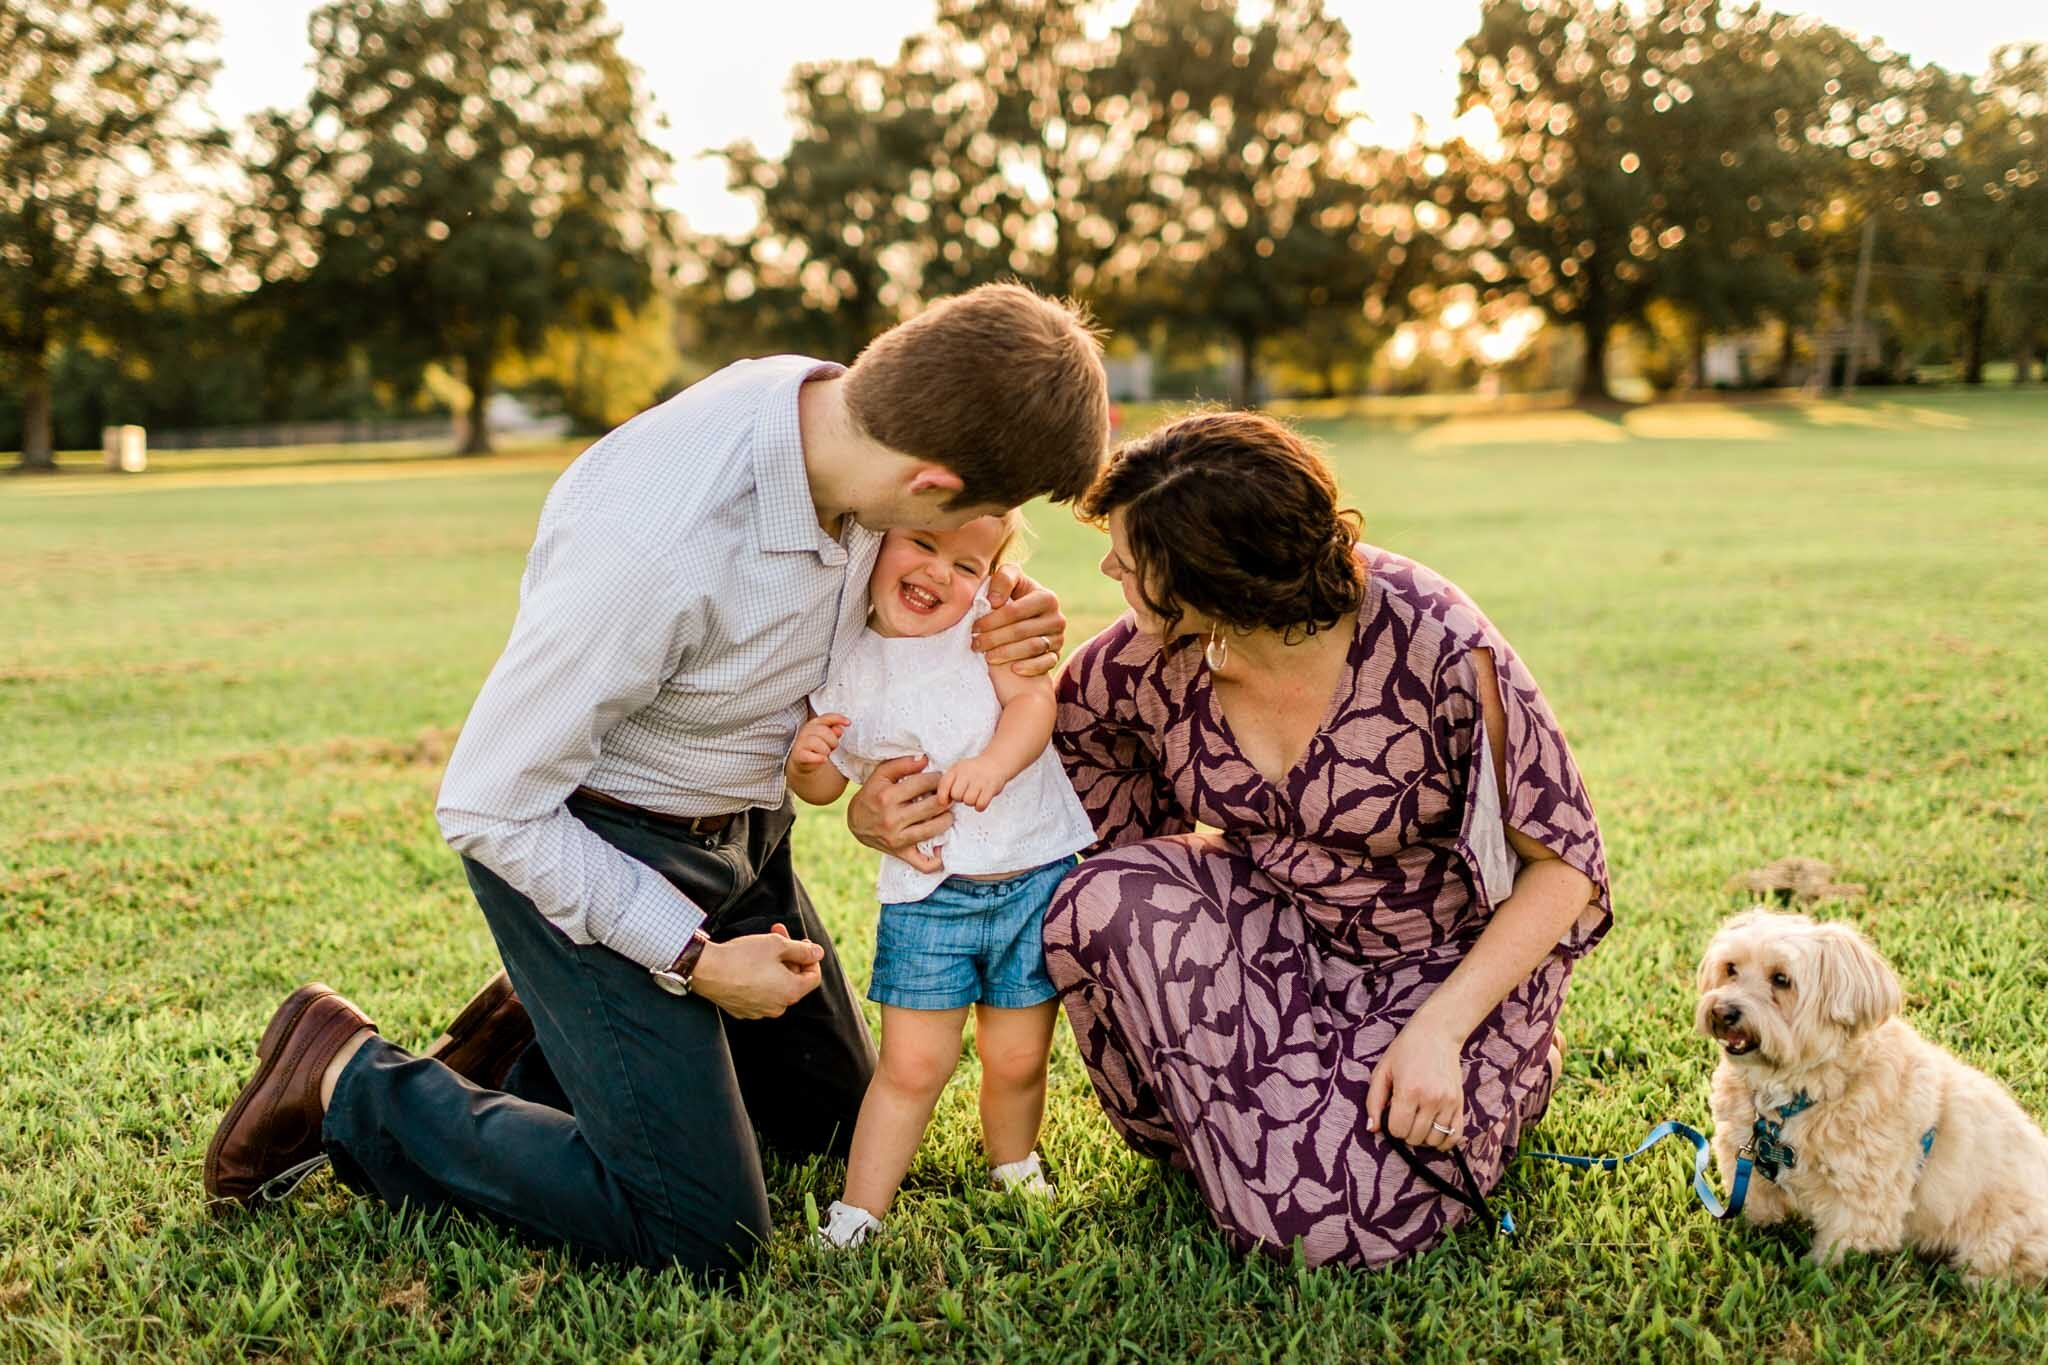 Raleigh Family Photographer at Dix Park | By G. Lin Photography | Group photos of family in open field laughing